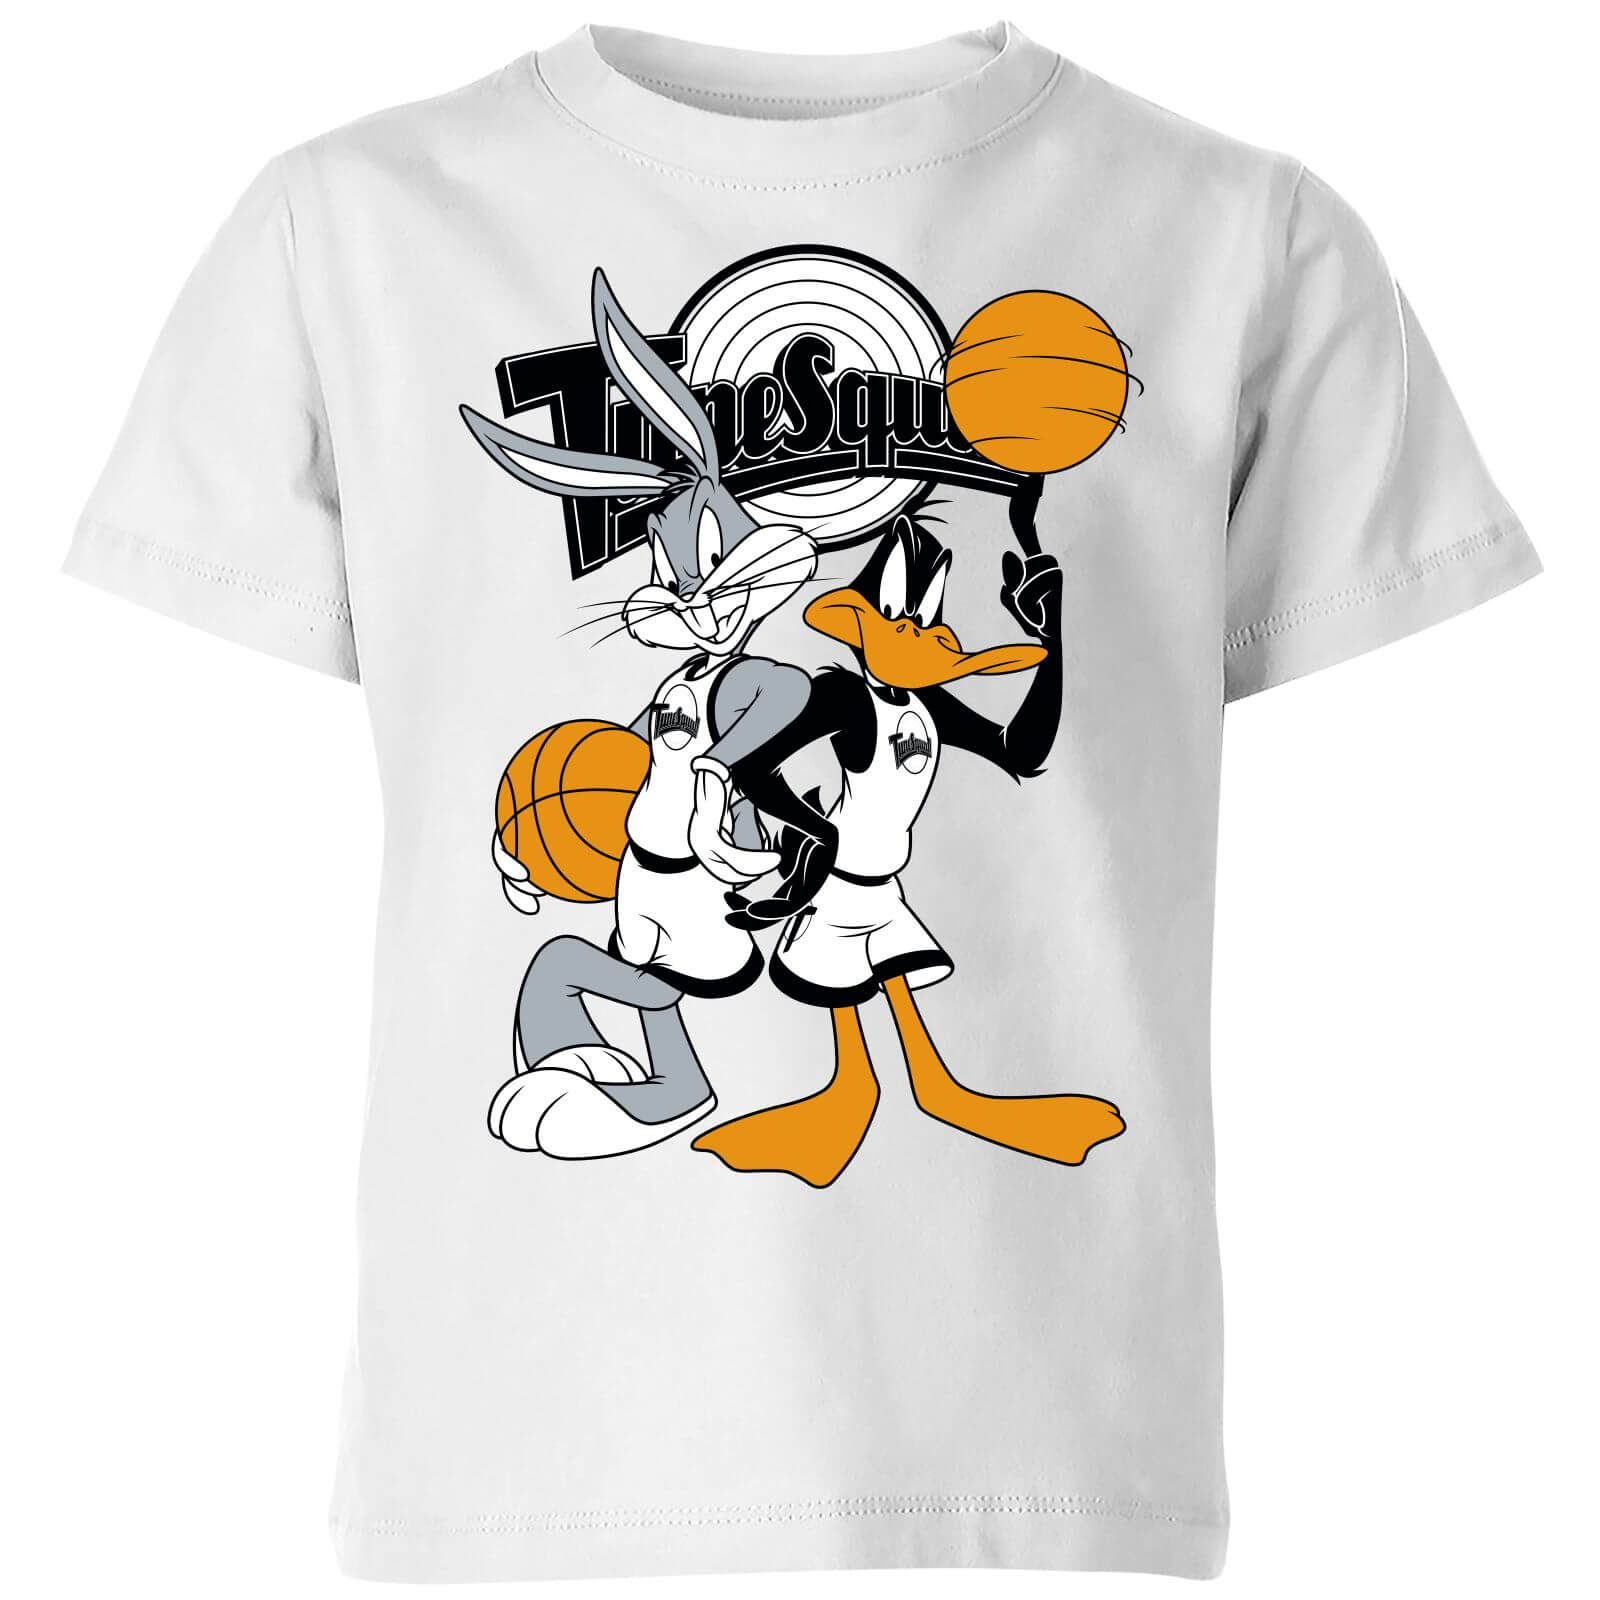 Space Jam Bugs And Daffy Tune Squad Kids T Shirt   White   9 10 Years   White